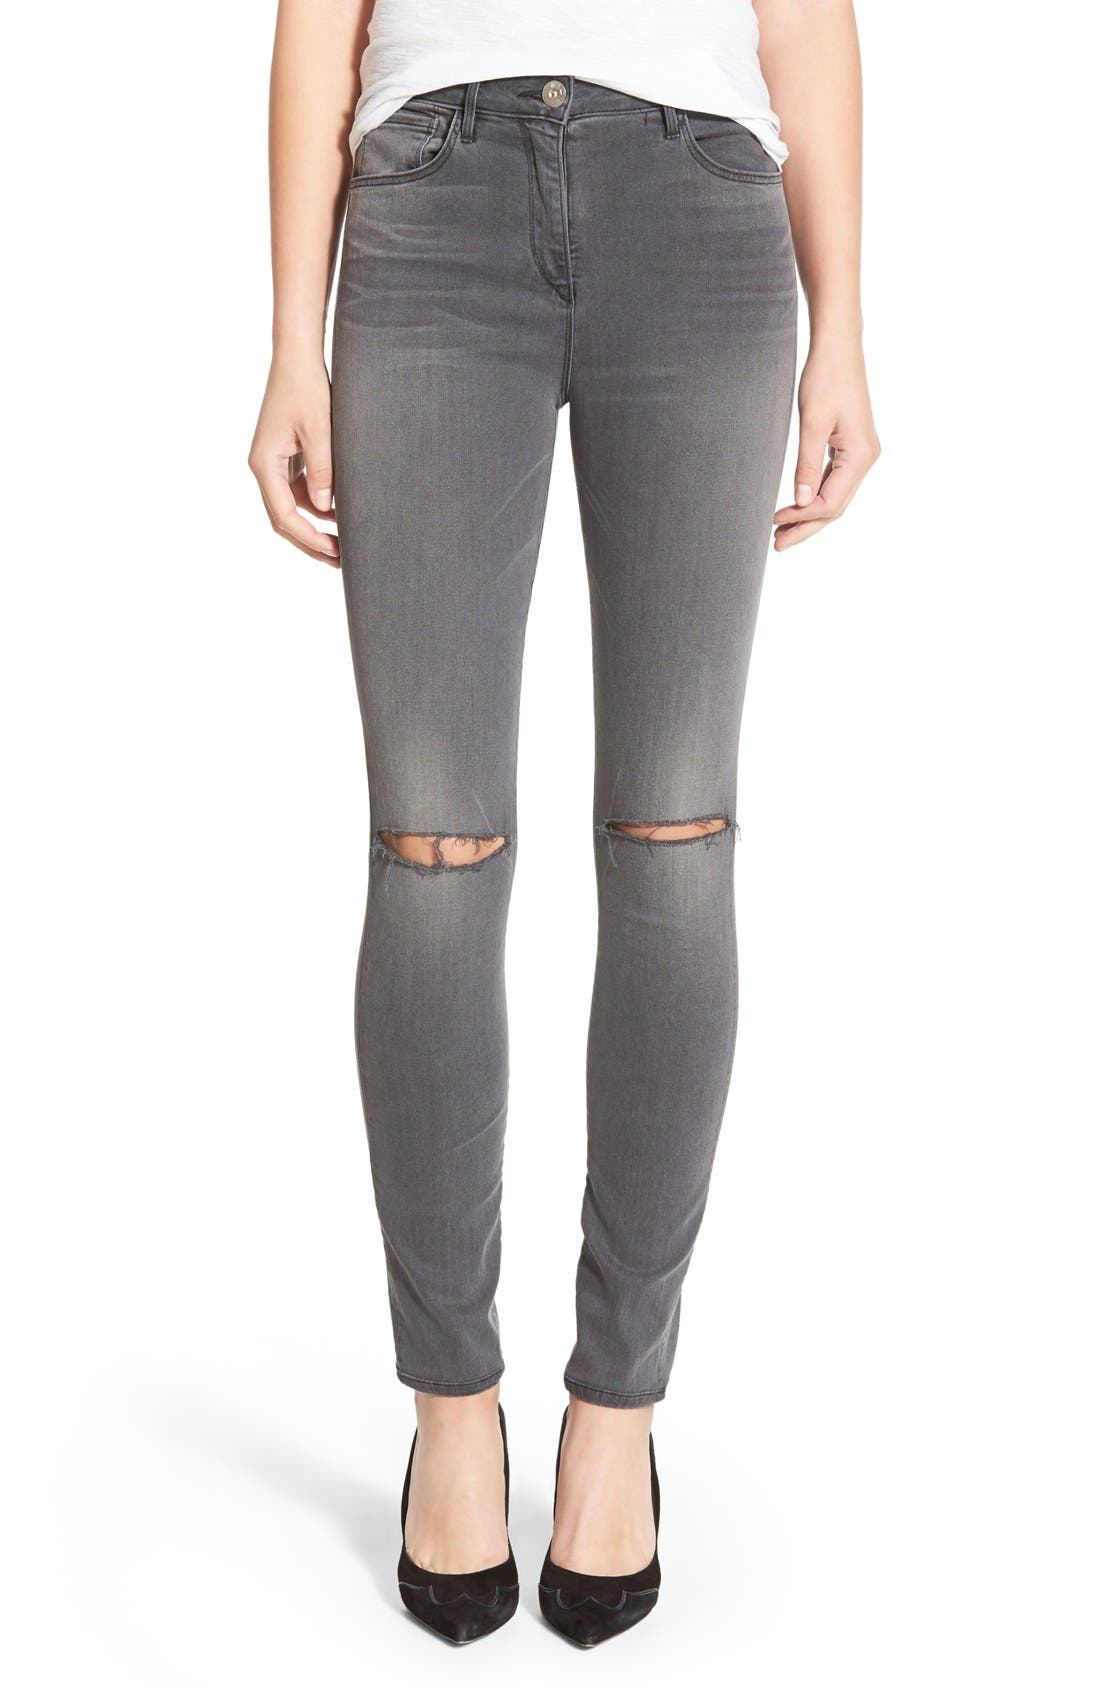 Alternate Image 1 Selected - 3x1 NYCHigh Rise Destroyed Skinny Jeans (Golf Grey Decon)